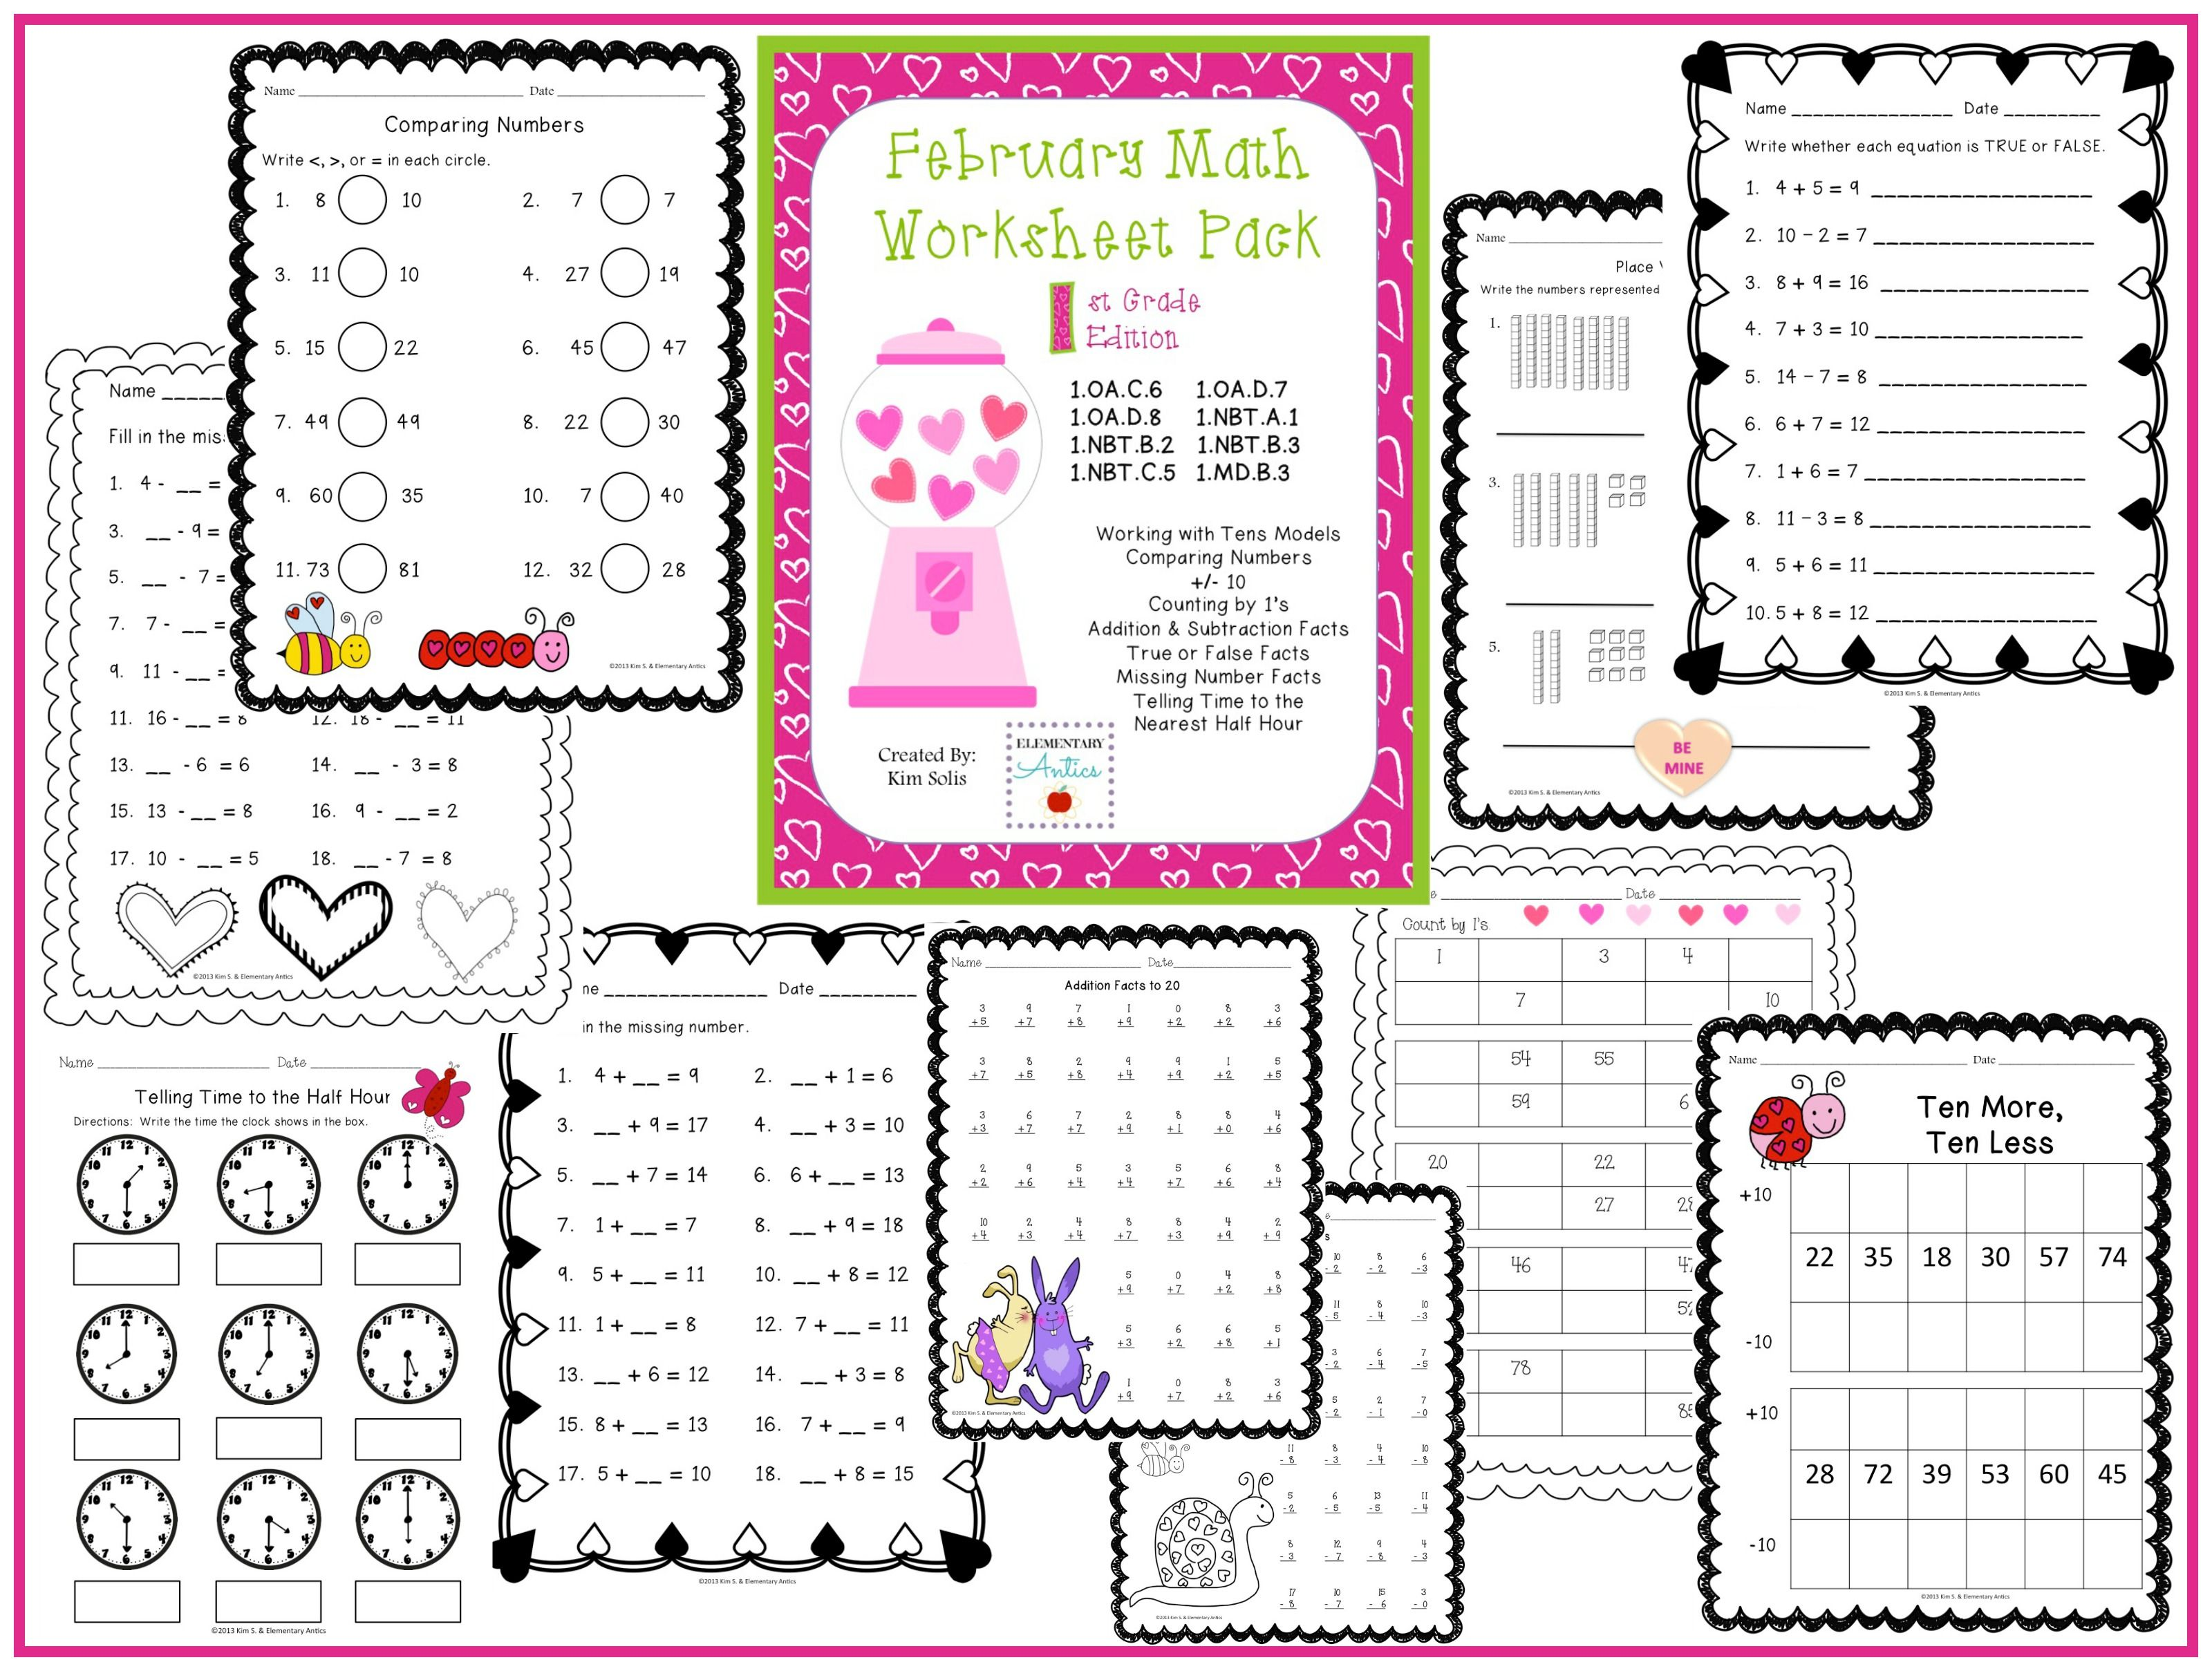 February Math Worksheet Pack 1st Grade